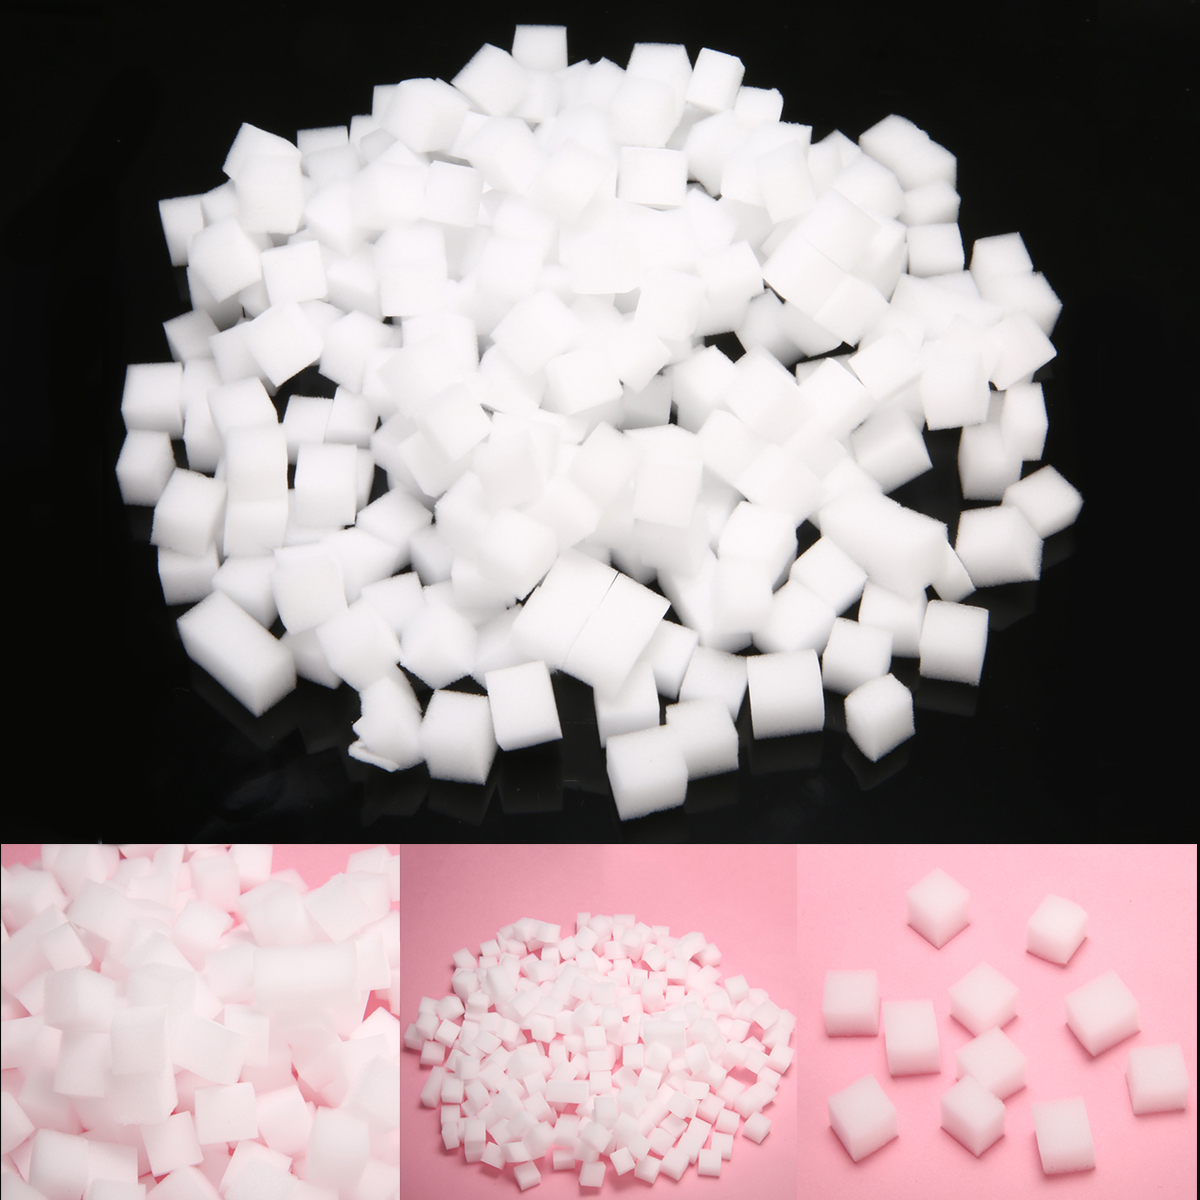 500g/Bag 10*10mm Simulation Jelly Cubes for DIY Slime / Jelly Cube Clear Slime Toy Girl Crafts DIY Toy Material